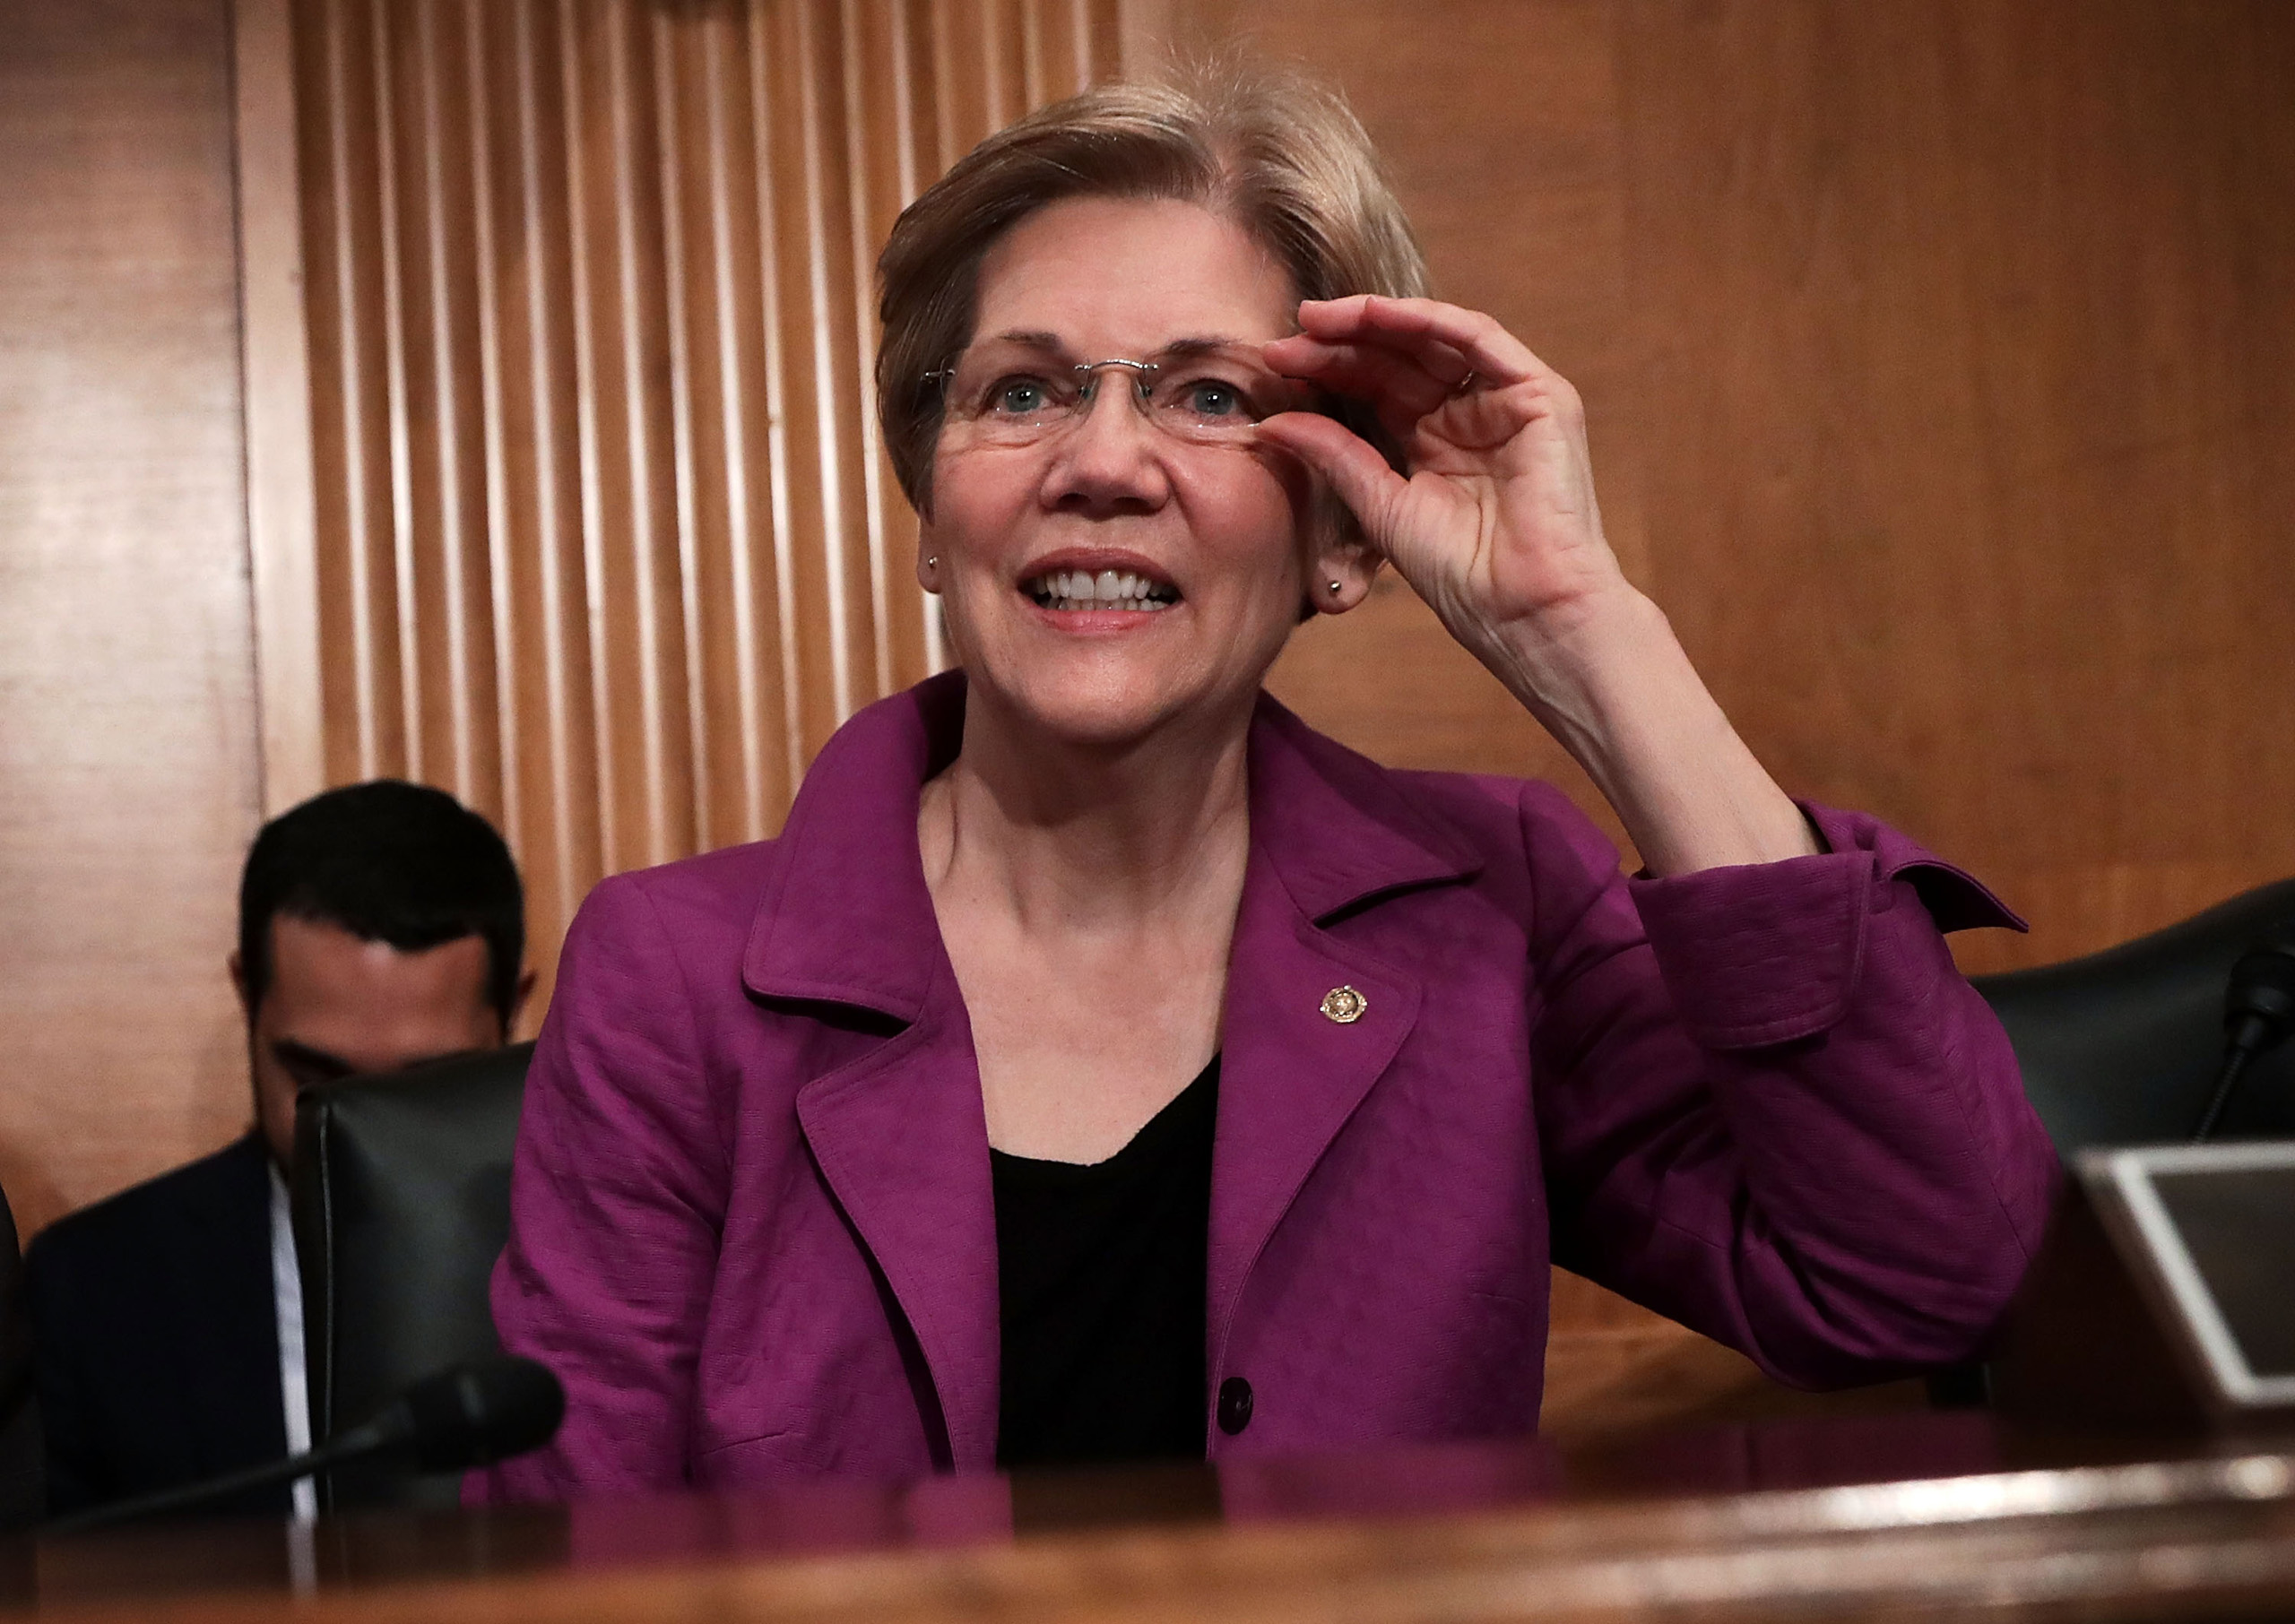 Sen. Elizabeth Warren waits for the beginning of a hearing before the Senate Banking, Housing and Urban Affairs Committee in Washington, D.C., April 7, 2016.